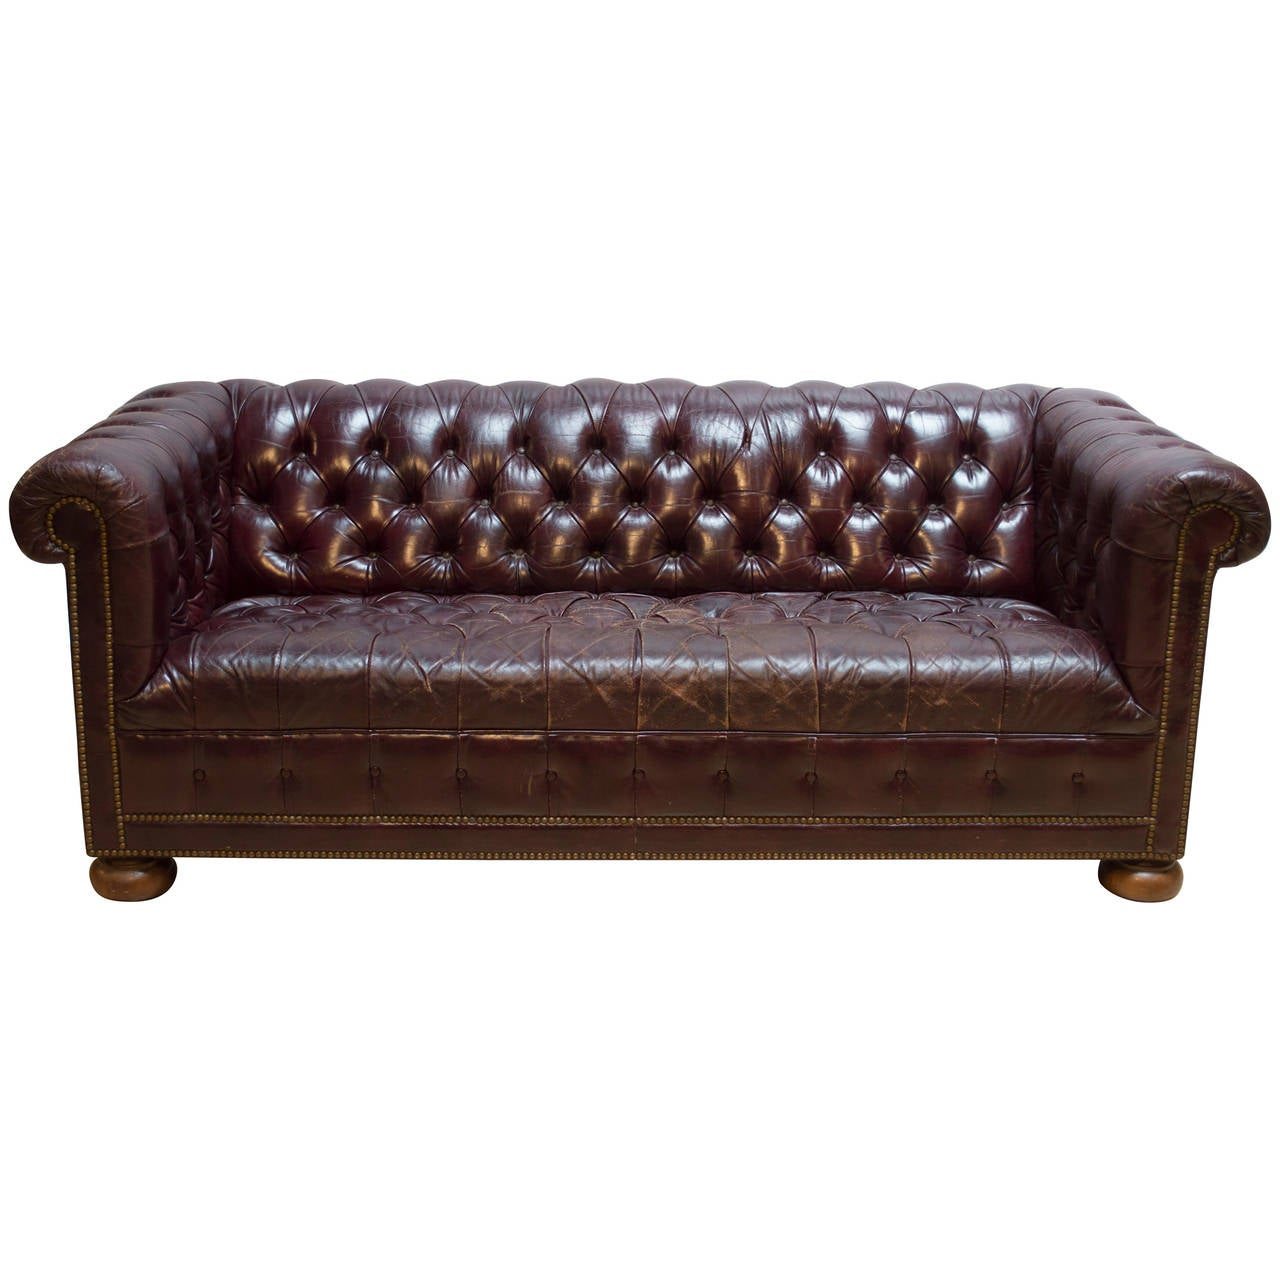 vintage leather chesterfield sofa at 1stdibs. Black Bedroom Furniture Sets. Home Design Ideas